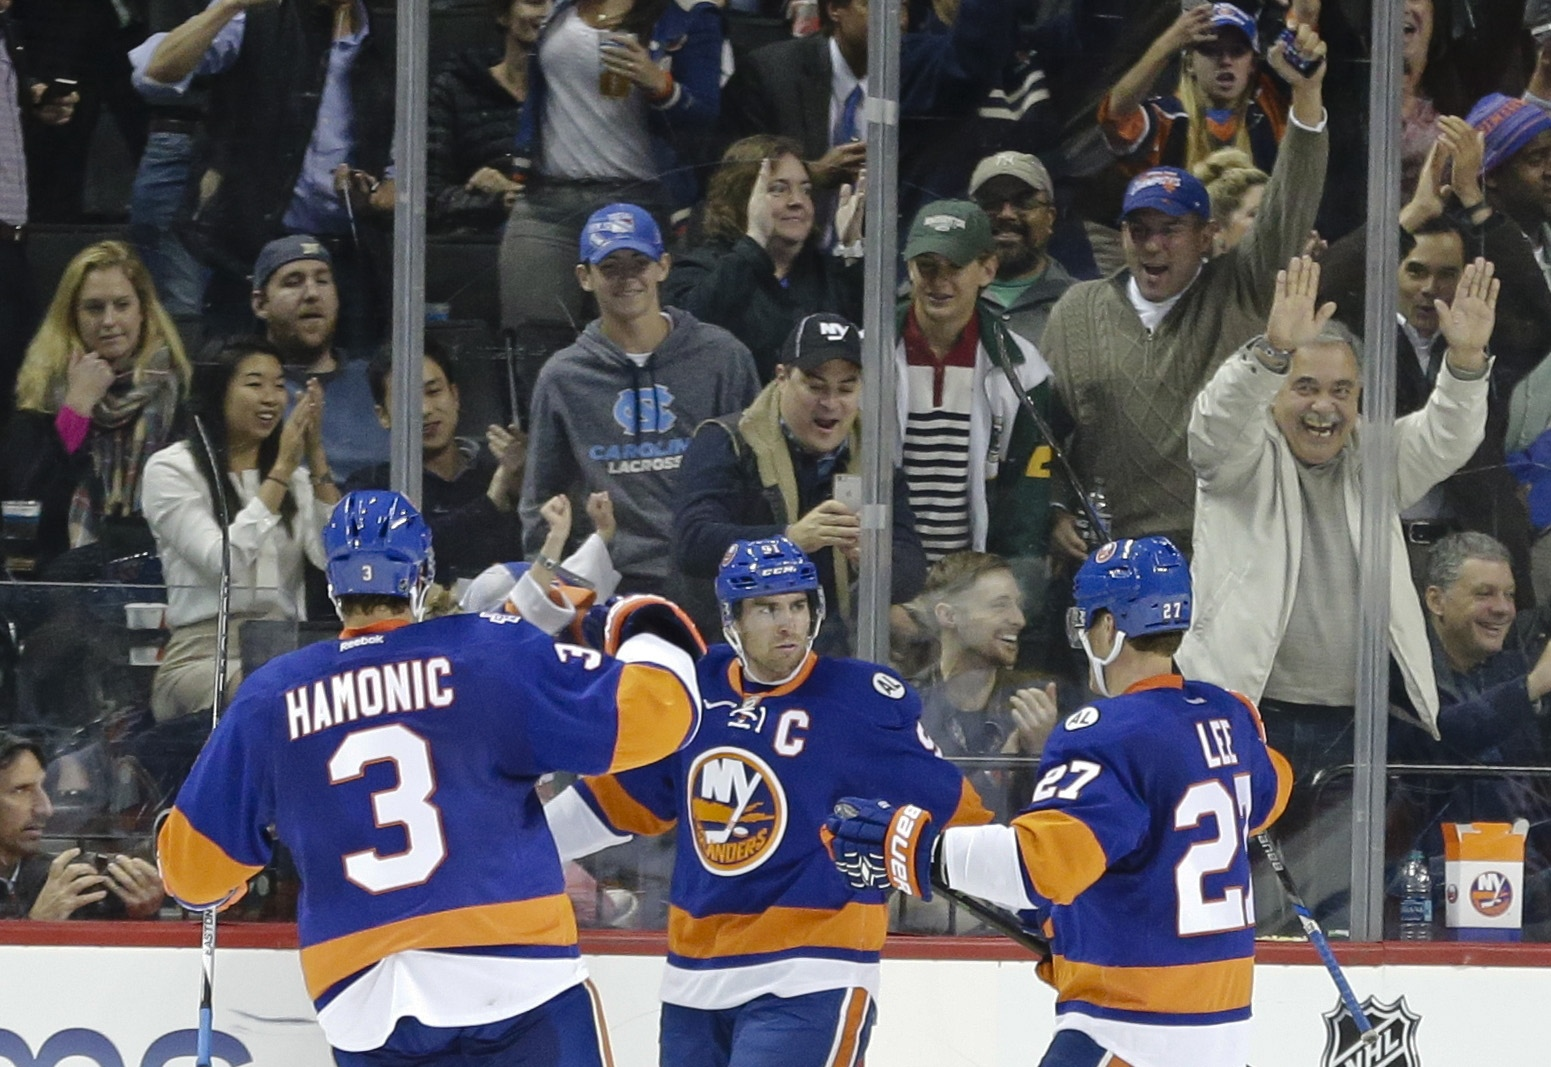 New York Islanders' John Tavares (91) celebrates with teammates Travis Hamonic (3) and Anders Lee (27) after scoring a goal during the third period of an NHL hockey game against the Nashville Predators Thursday, Oct. 15, 2015, in New York. The Islanders w